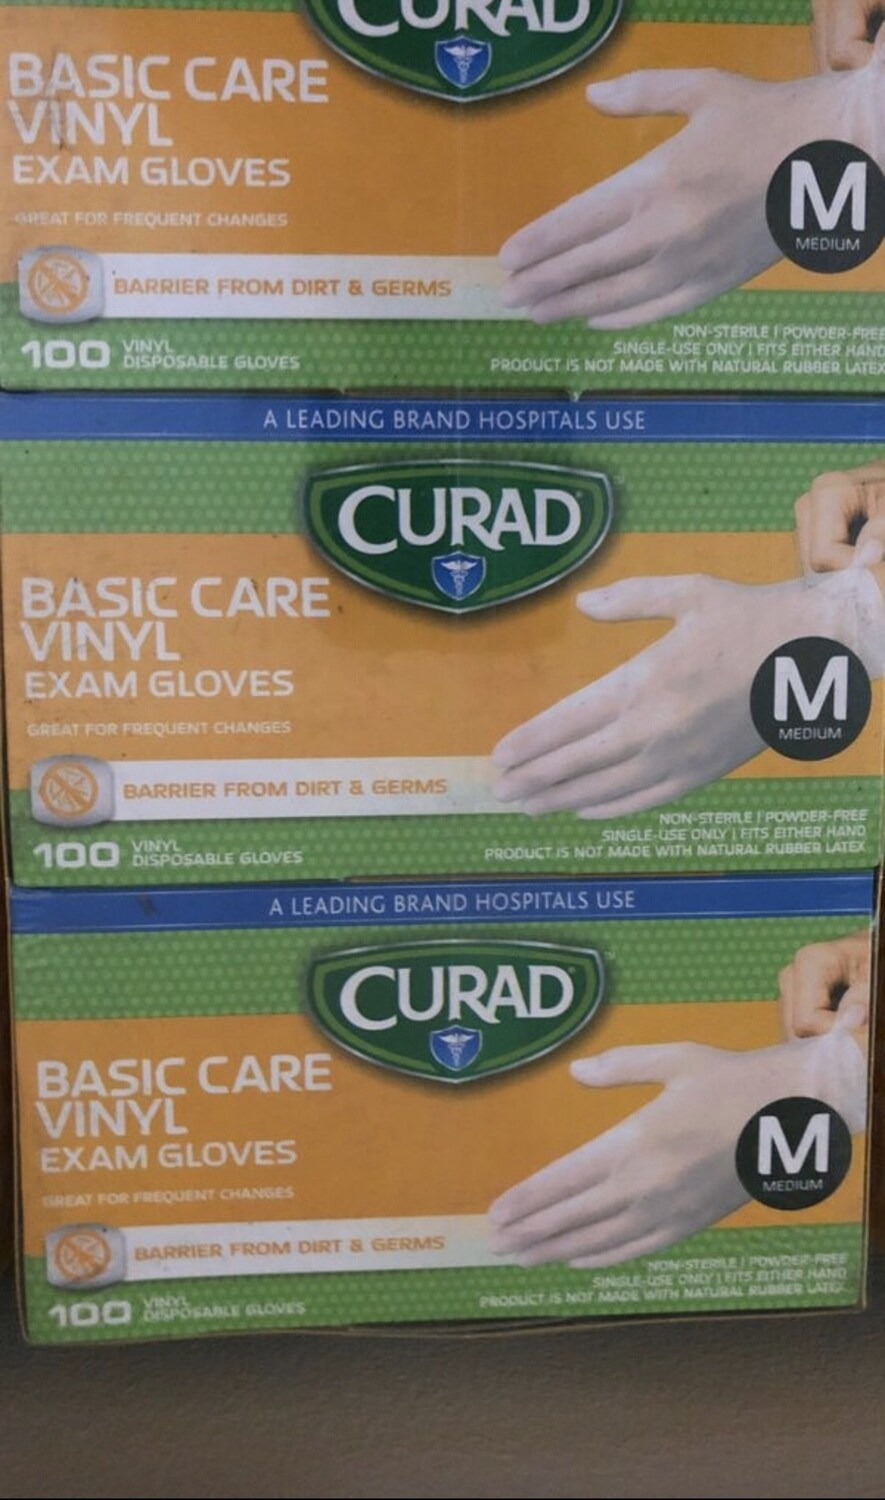 Curad Exam Glove, 100pc